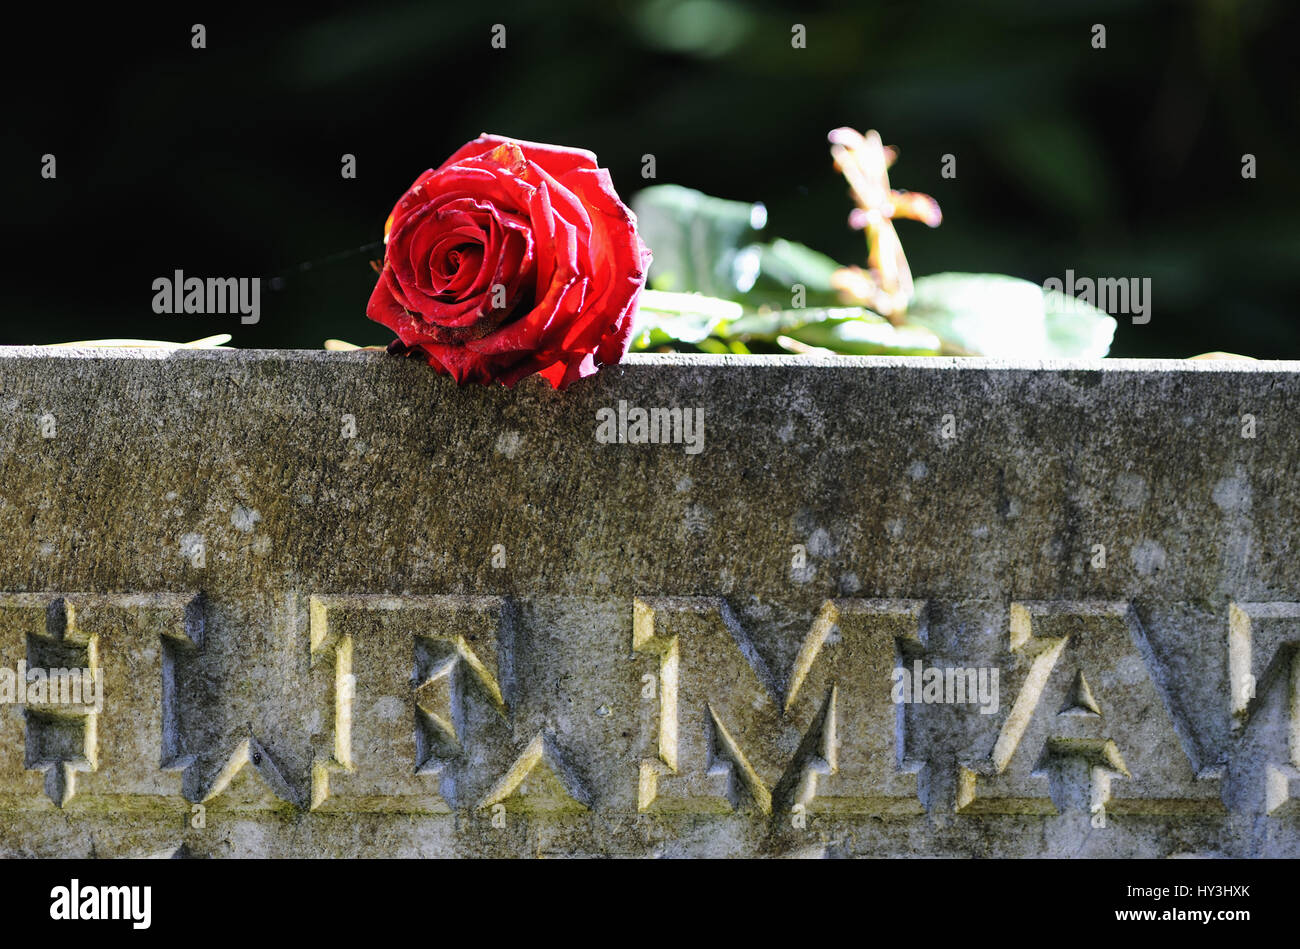 Red Rose On Gravestone On Stock Photos & Red Rose On Gravestone On